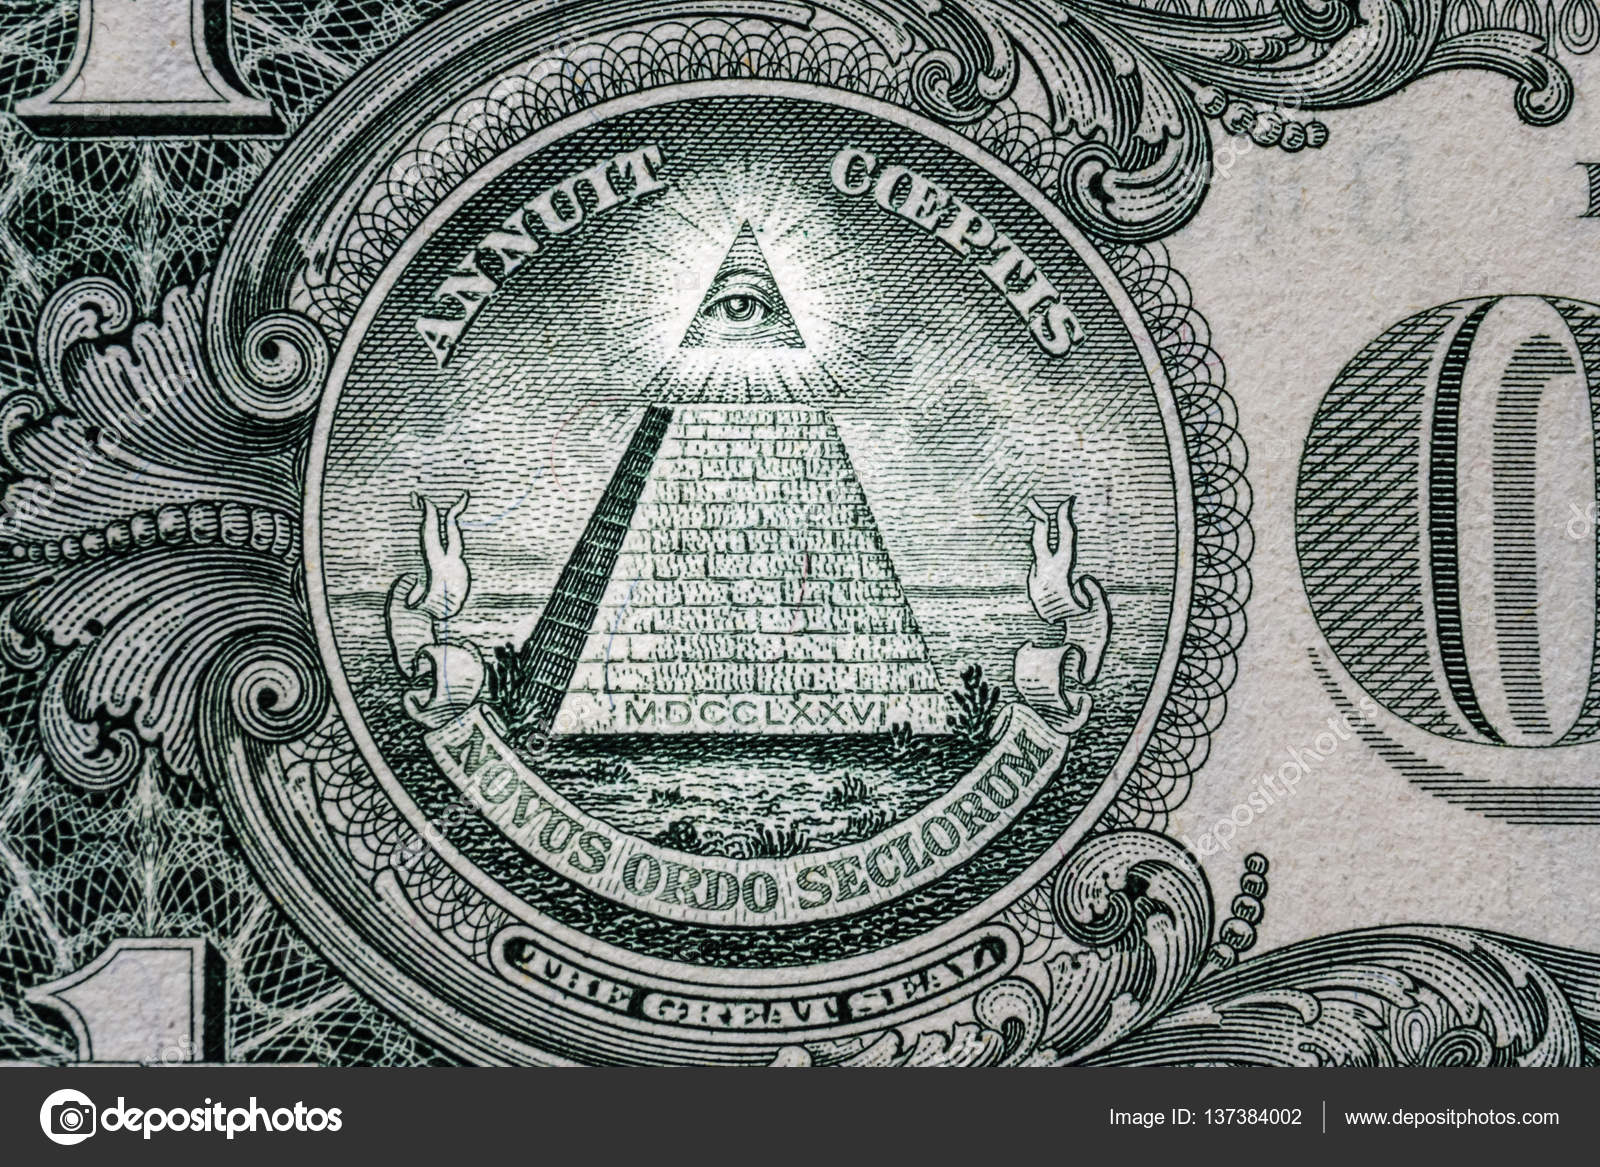 All seeing eye masonic sign mason symbol 1 one dollar stock all seeing eye on the one dollar new world order elite characters 1 dollar photo by irusetkayandex biocorpaavc Images